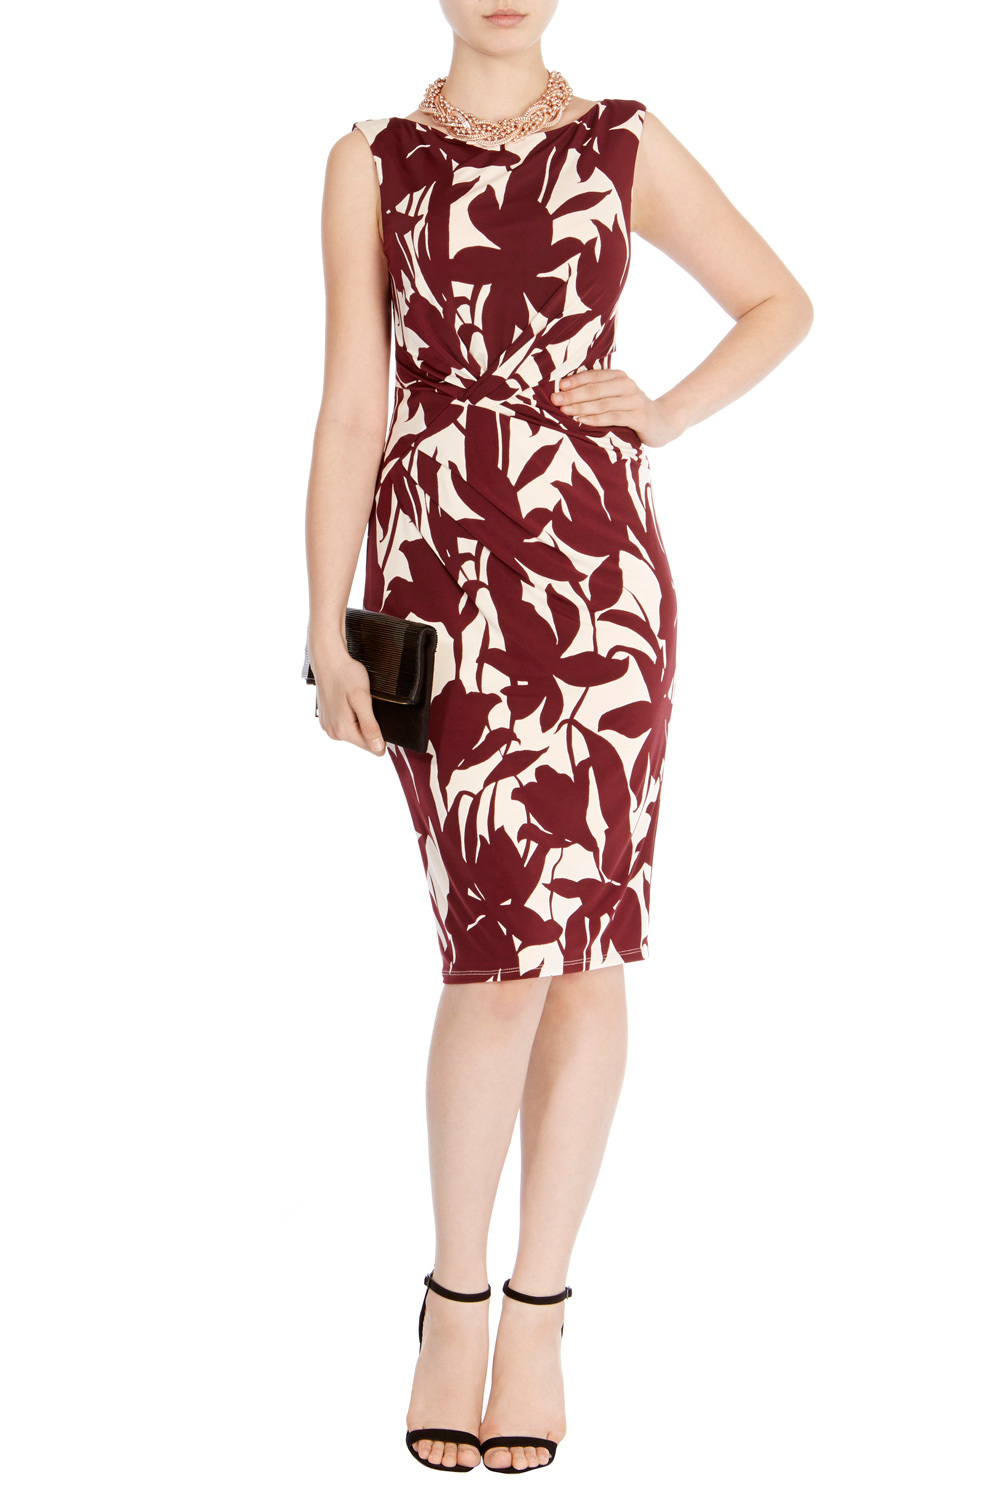 Kepp Print Jamilia Dress - style: shift; length: below the knee; neckline: v-neck; fit: tailored/fitted; sleeve style: sleeveless; secondary colour: white; predominant colour: burgundy; occasions: evening; fibres: polyester/polyamide - 100%; sleeve length: sleeveless; pattern type: fabric; pattern size: big & busy; pattern: florals; texture group: other - light to midweight; season: s/s 2016; wardrobe: event